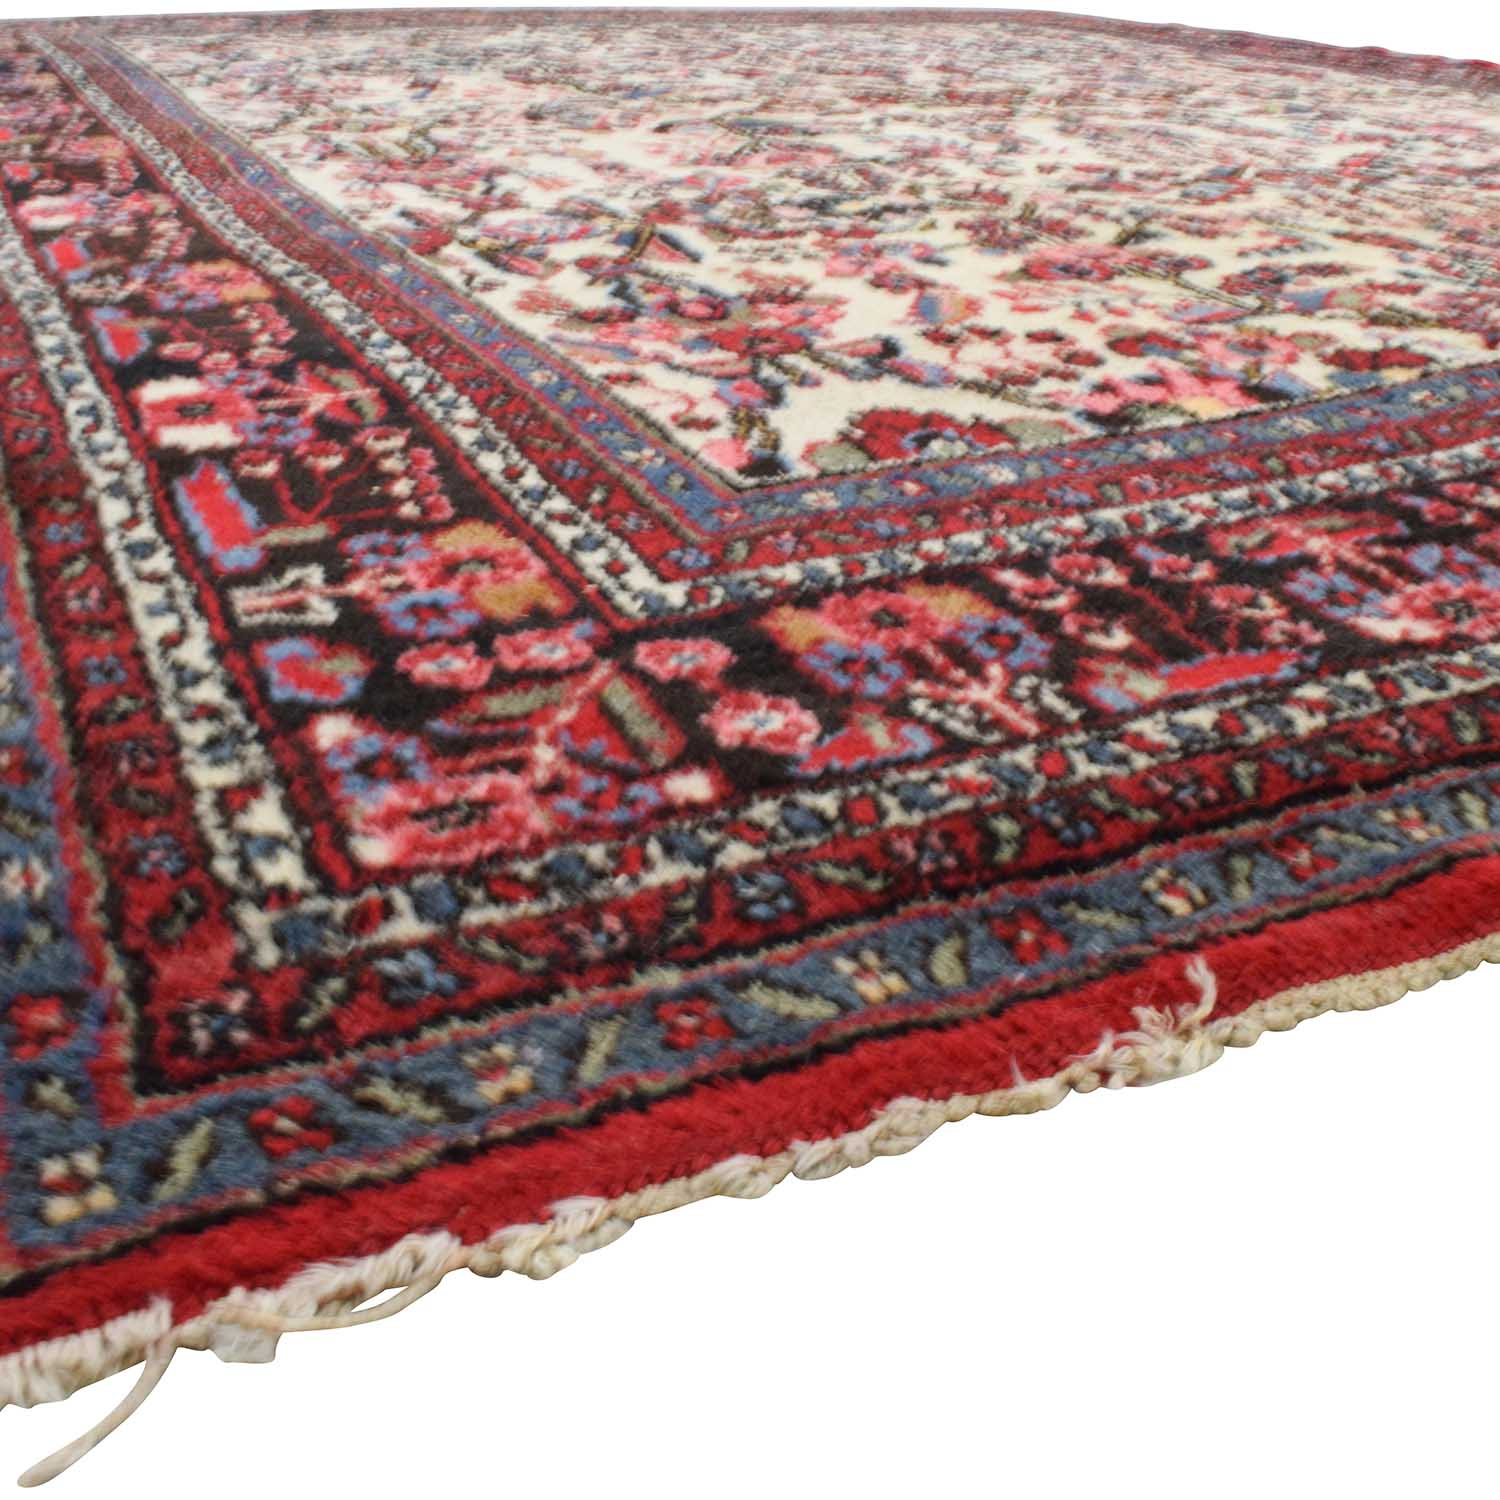 Handmade Vintage Red Persian Rug / Decor